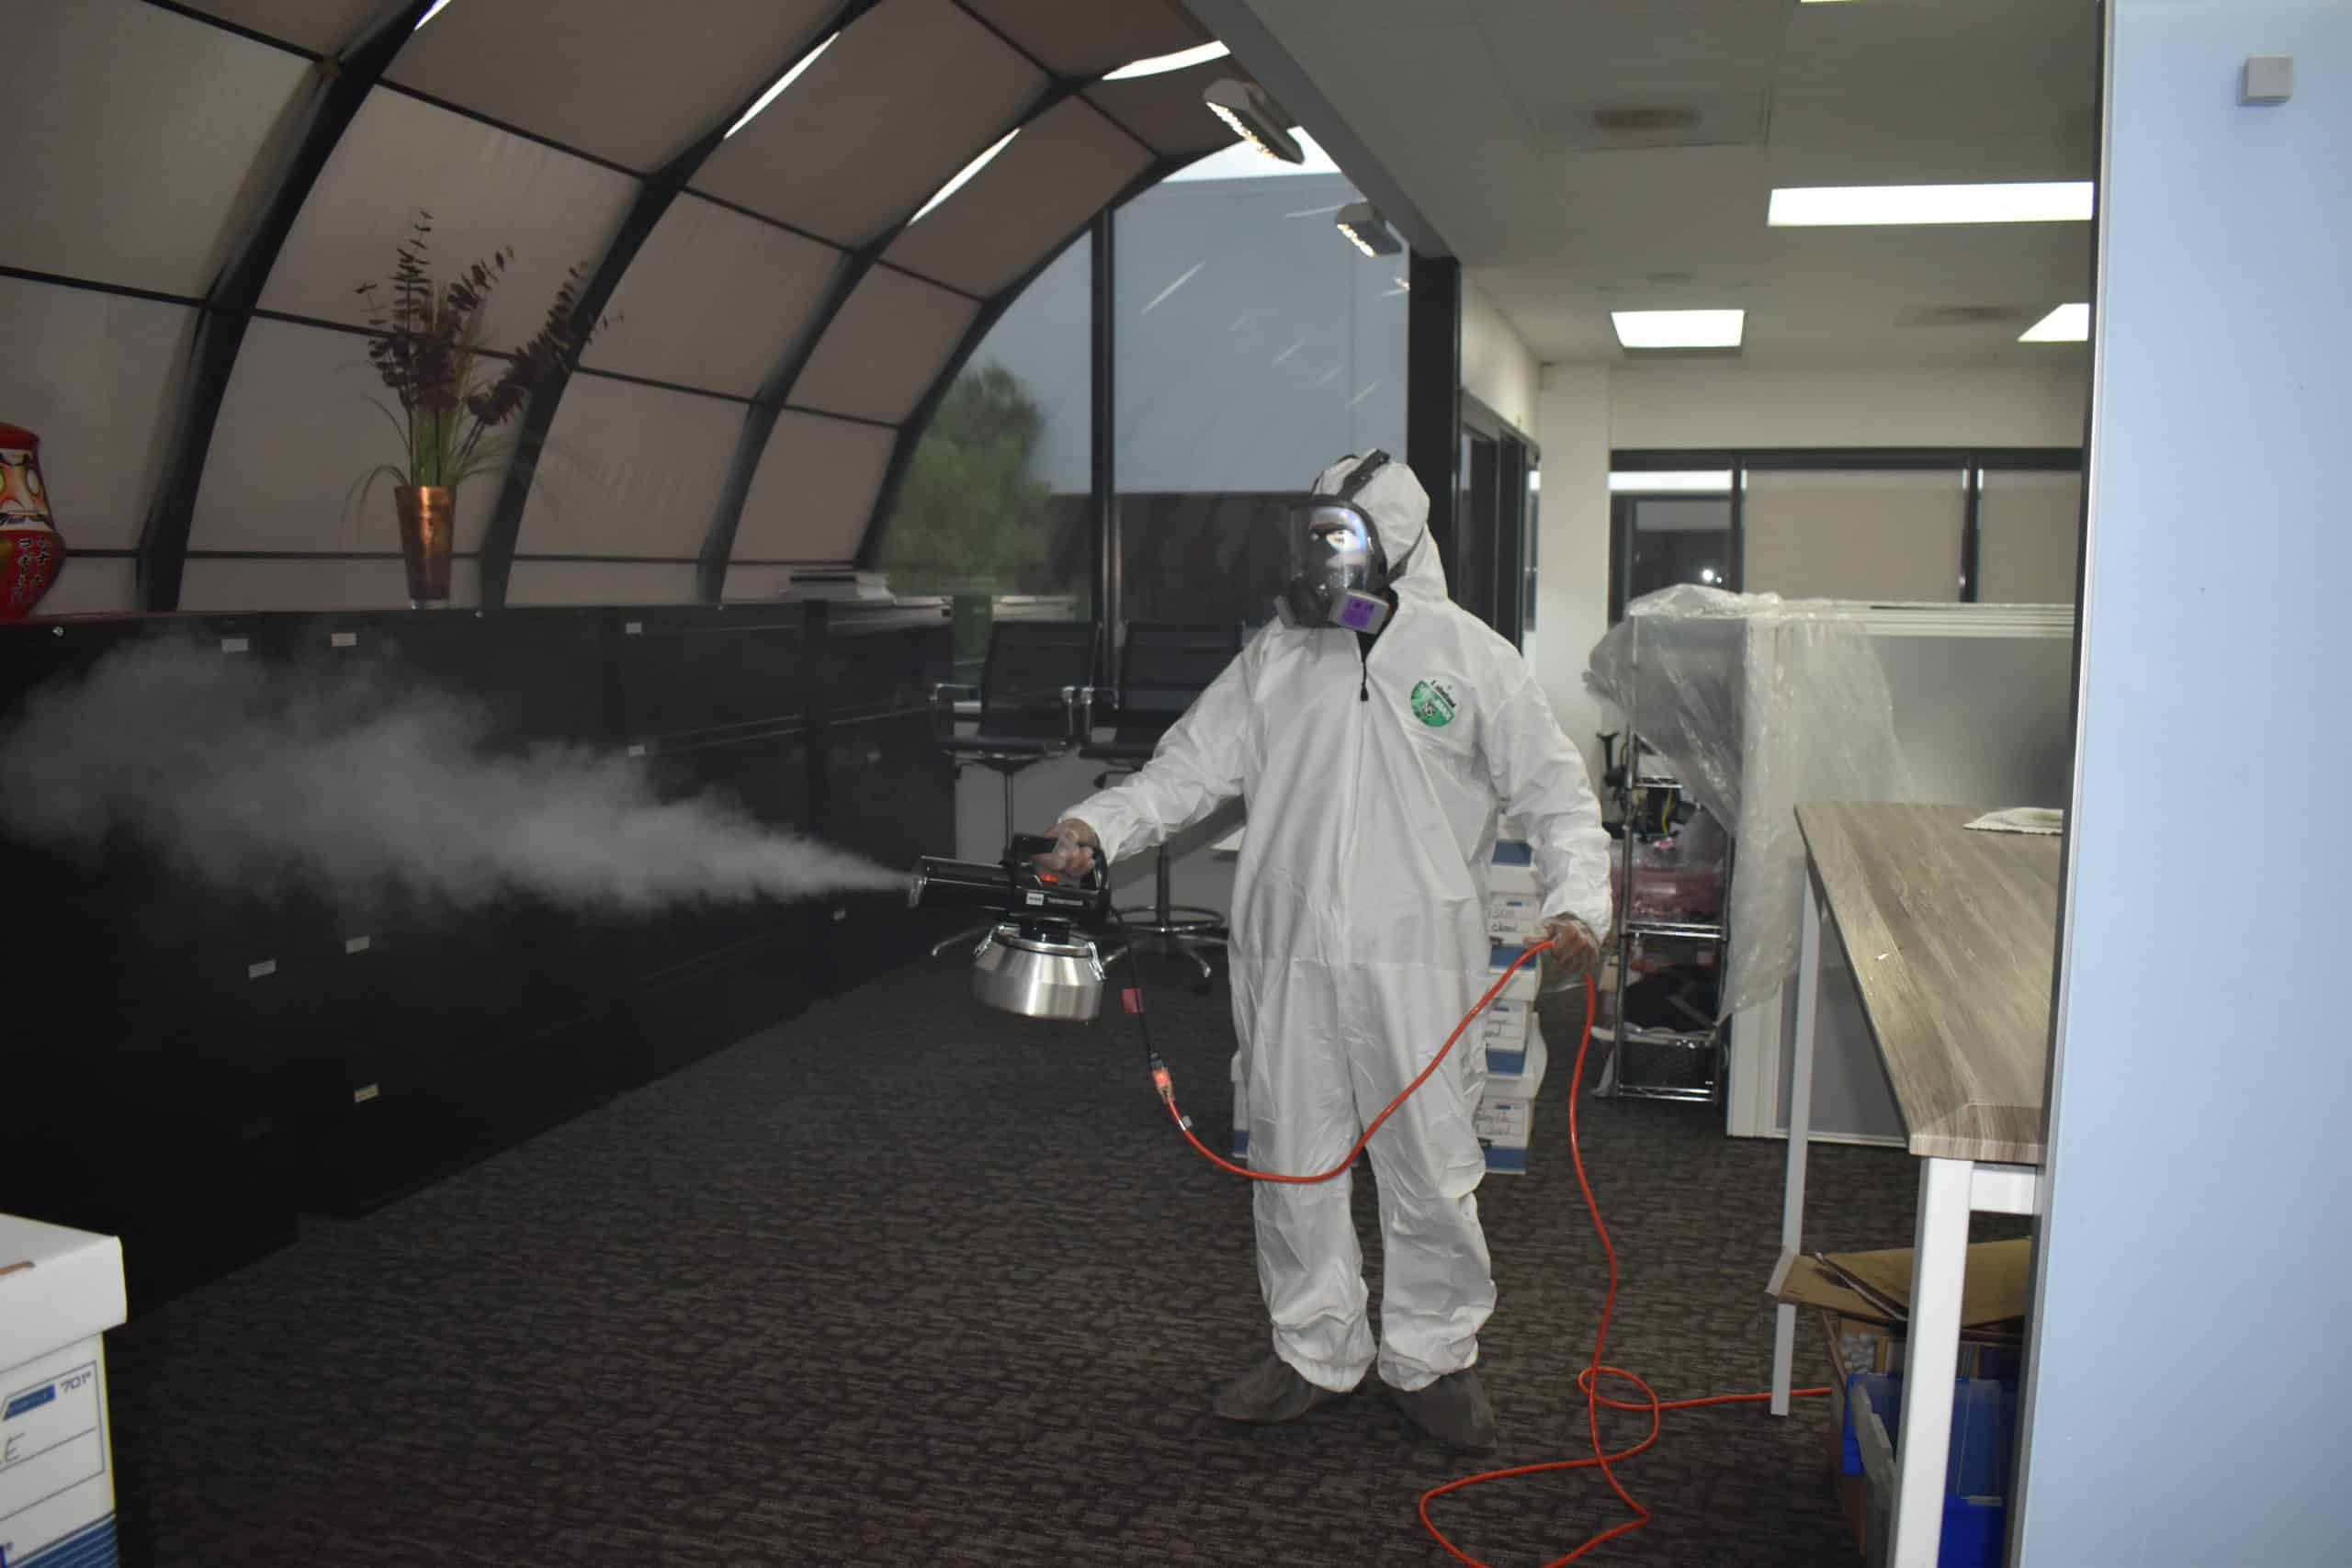 Action Duct - Antimicrobial Disinfection, Fogging and Sanitization Services